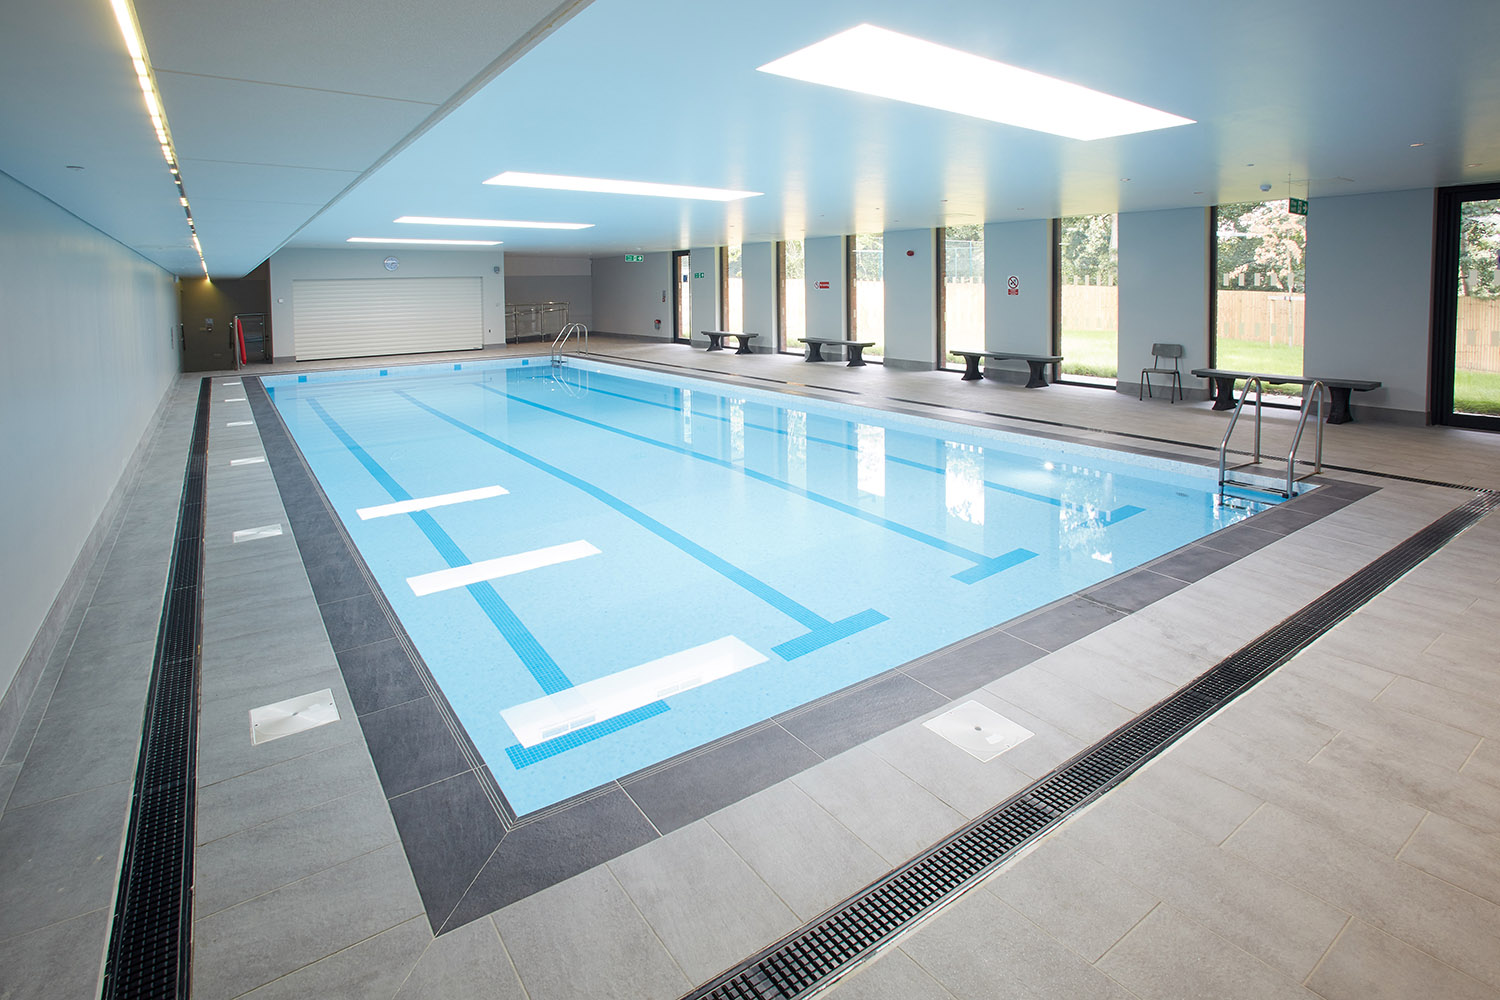 Impressive Indoor Swimming Pool for Kent Prep School